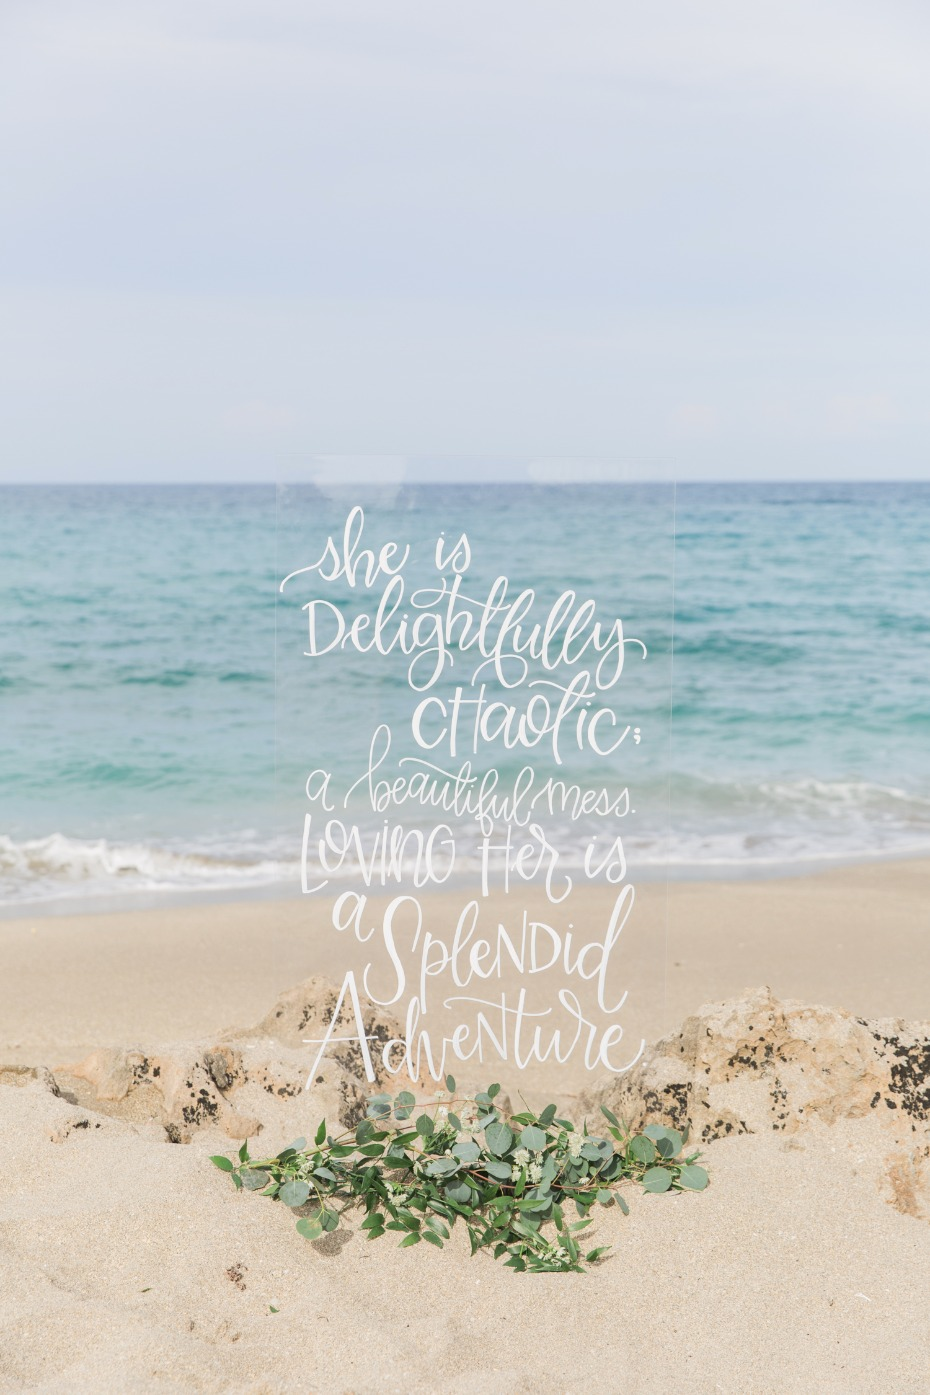 She is delightfully chaotic, a beautiful mess. Loving her is a splendid adventure sign